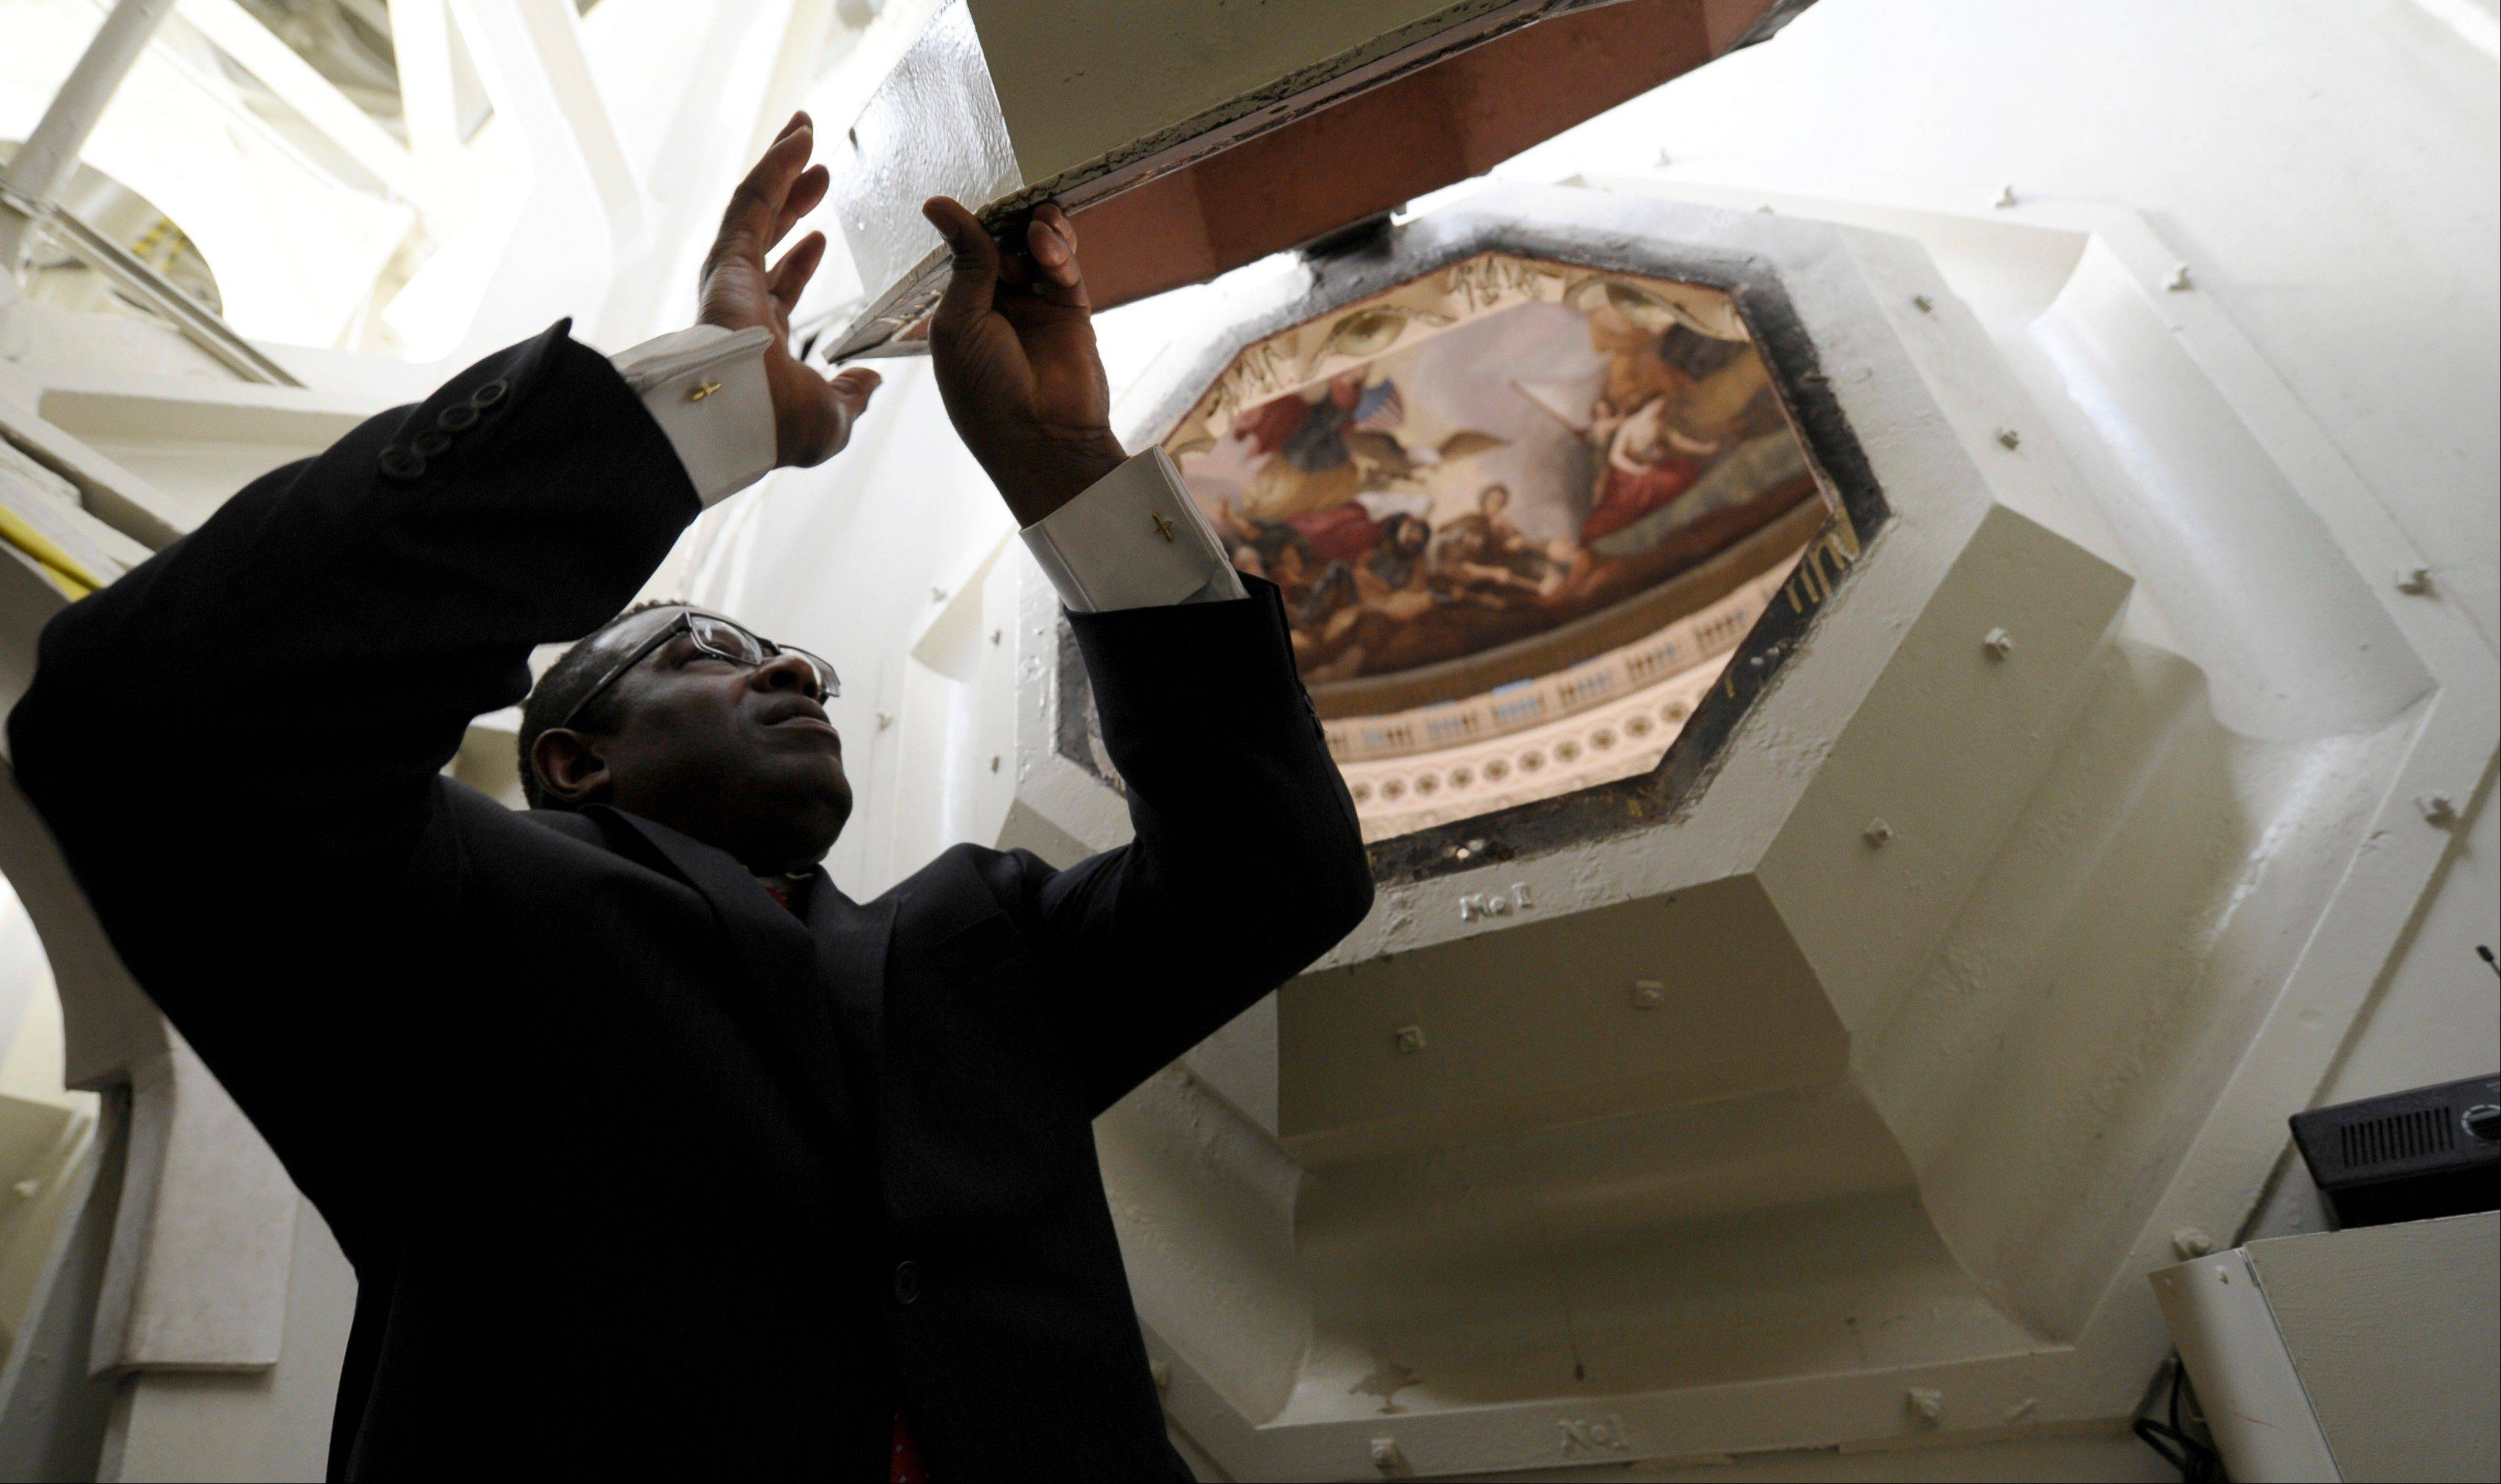 Eugene Poole Jr., a project manager for the Capitol dome restoration project, lifts one of the coffer windows in the ceiling of the Capitol dome during a media tour on Capitol Hill in Washington. A world-famous symbol of democracy is going under cover, as workers start a two-year, $60 million renovation of the U.S. Capitol dome.